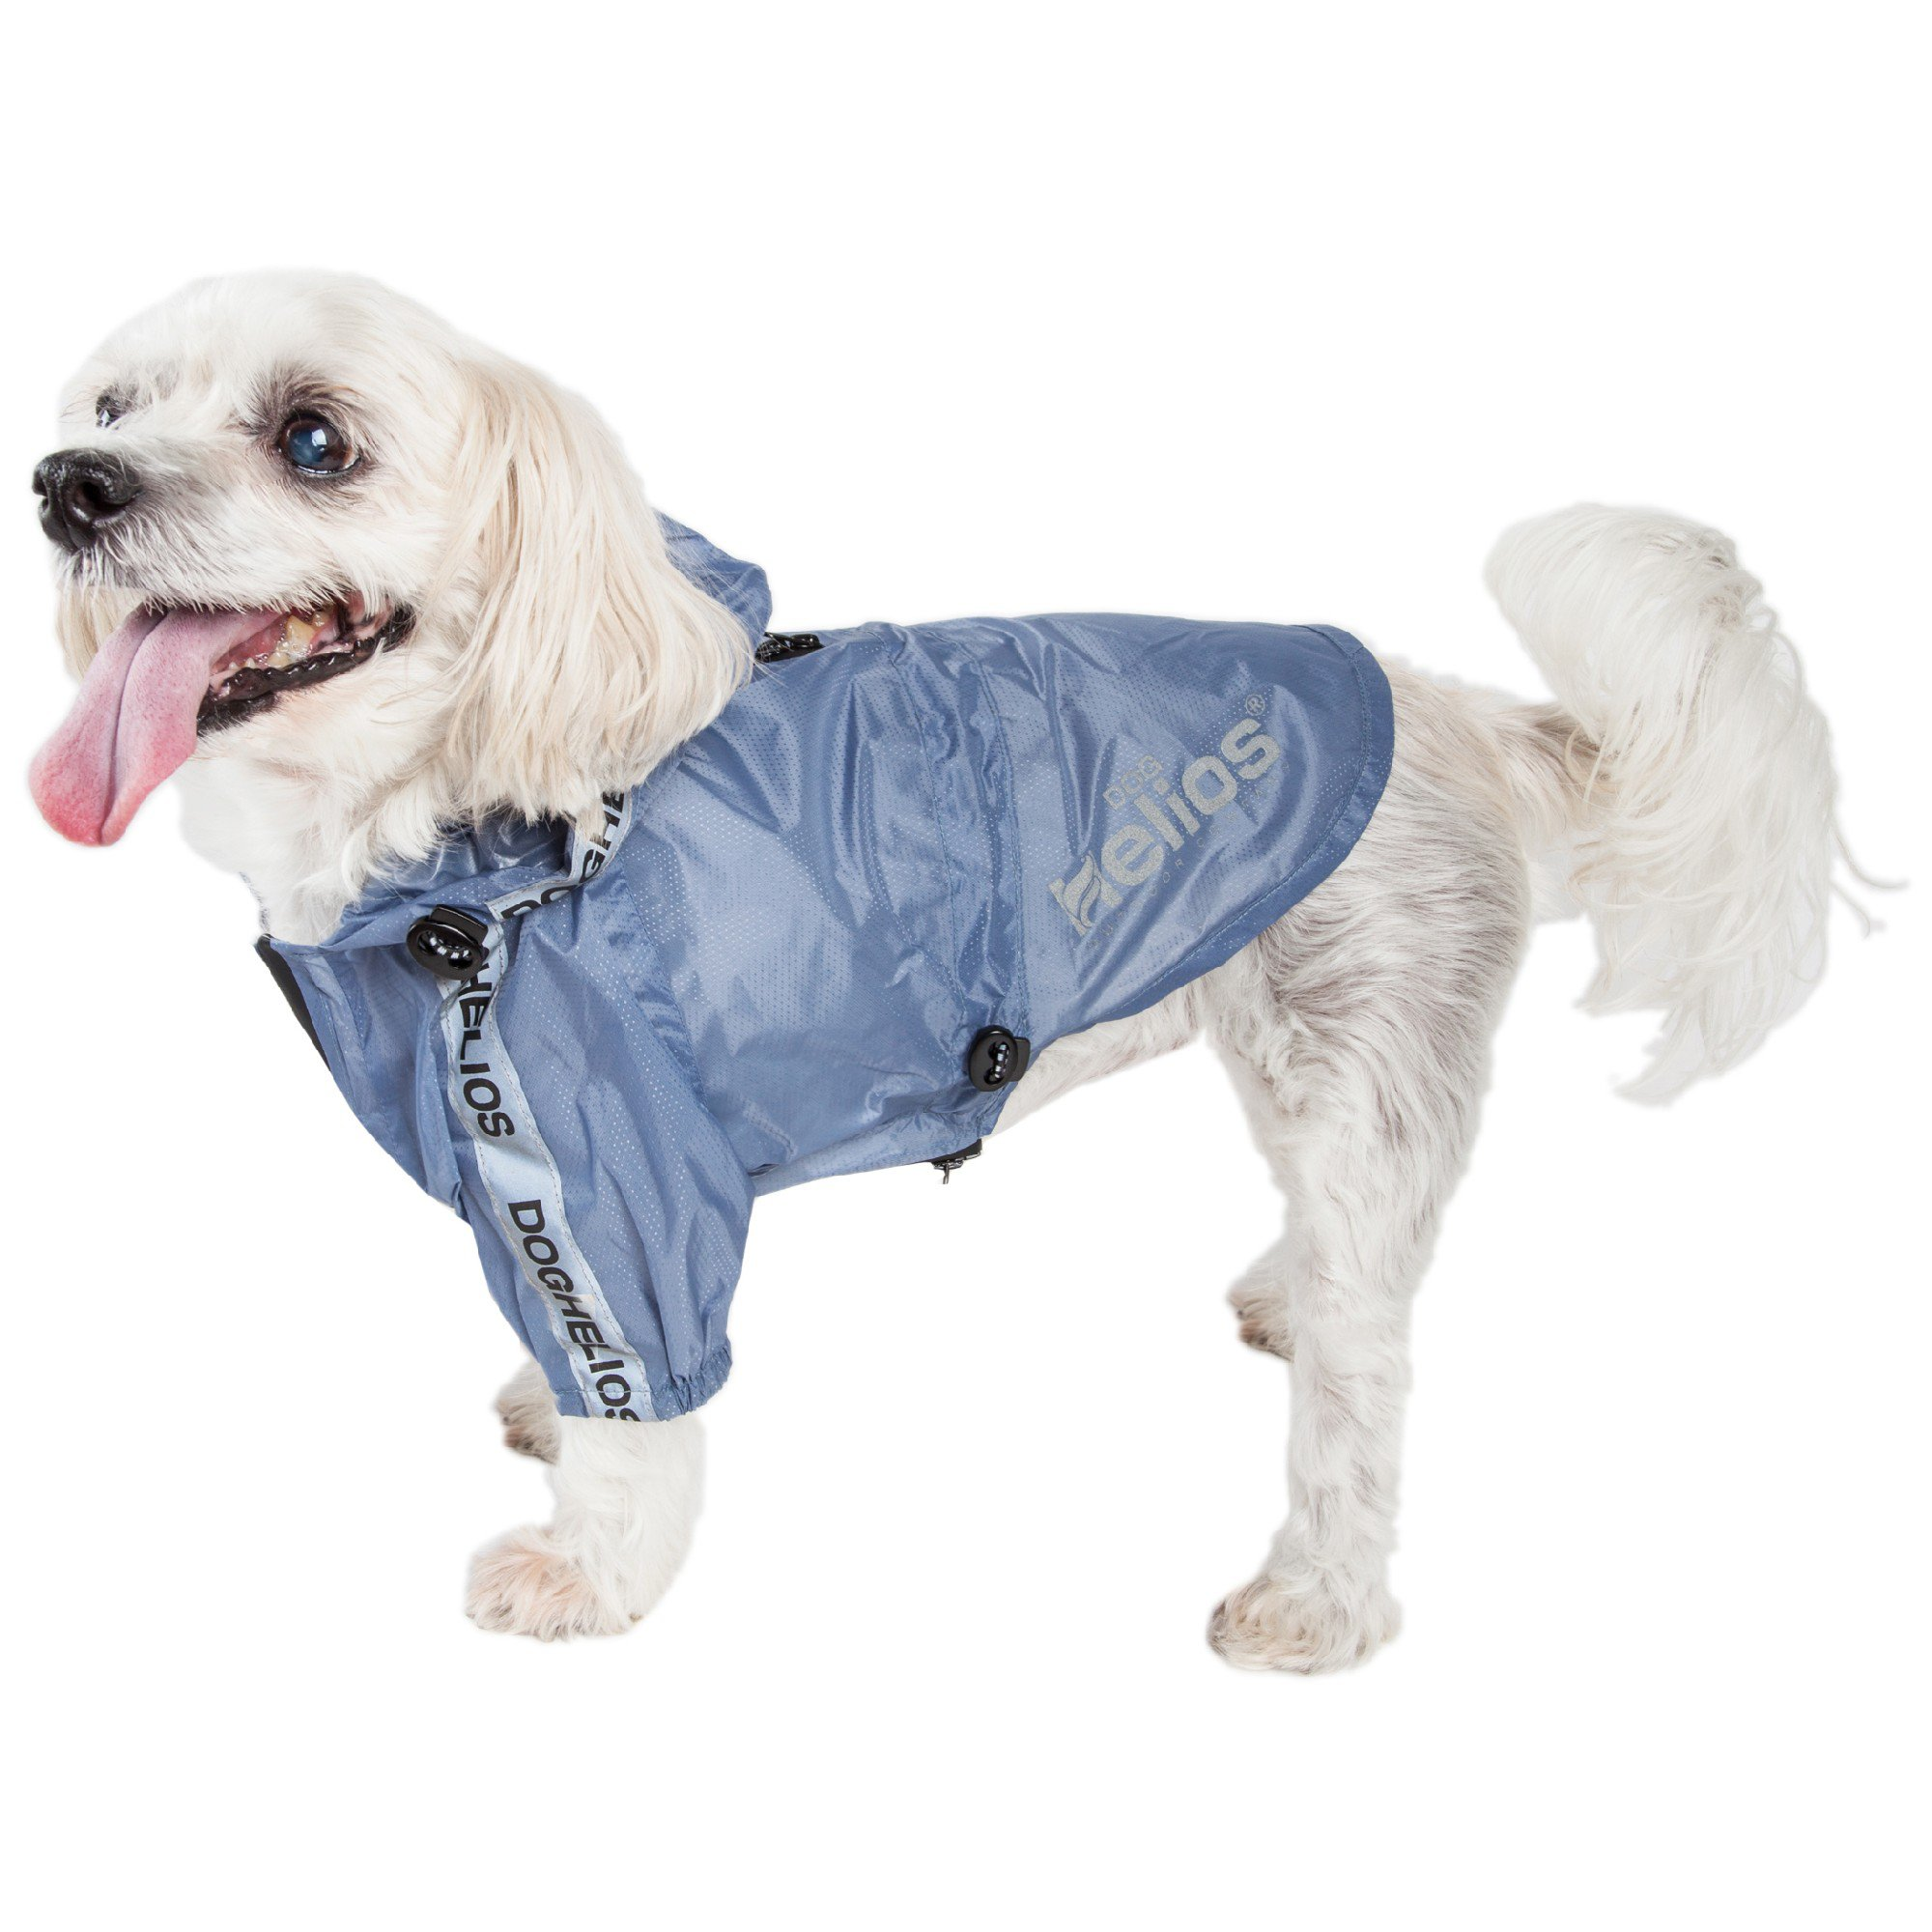 Dog Helios Torrential Shield Waterproof Blue Dog Windbreaker Raincoat, Medium